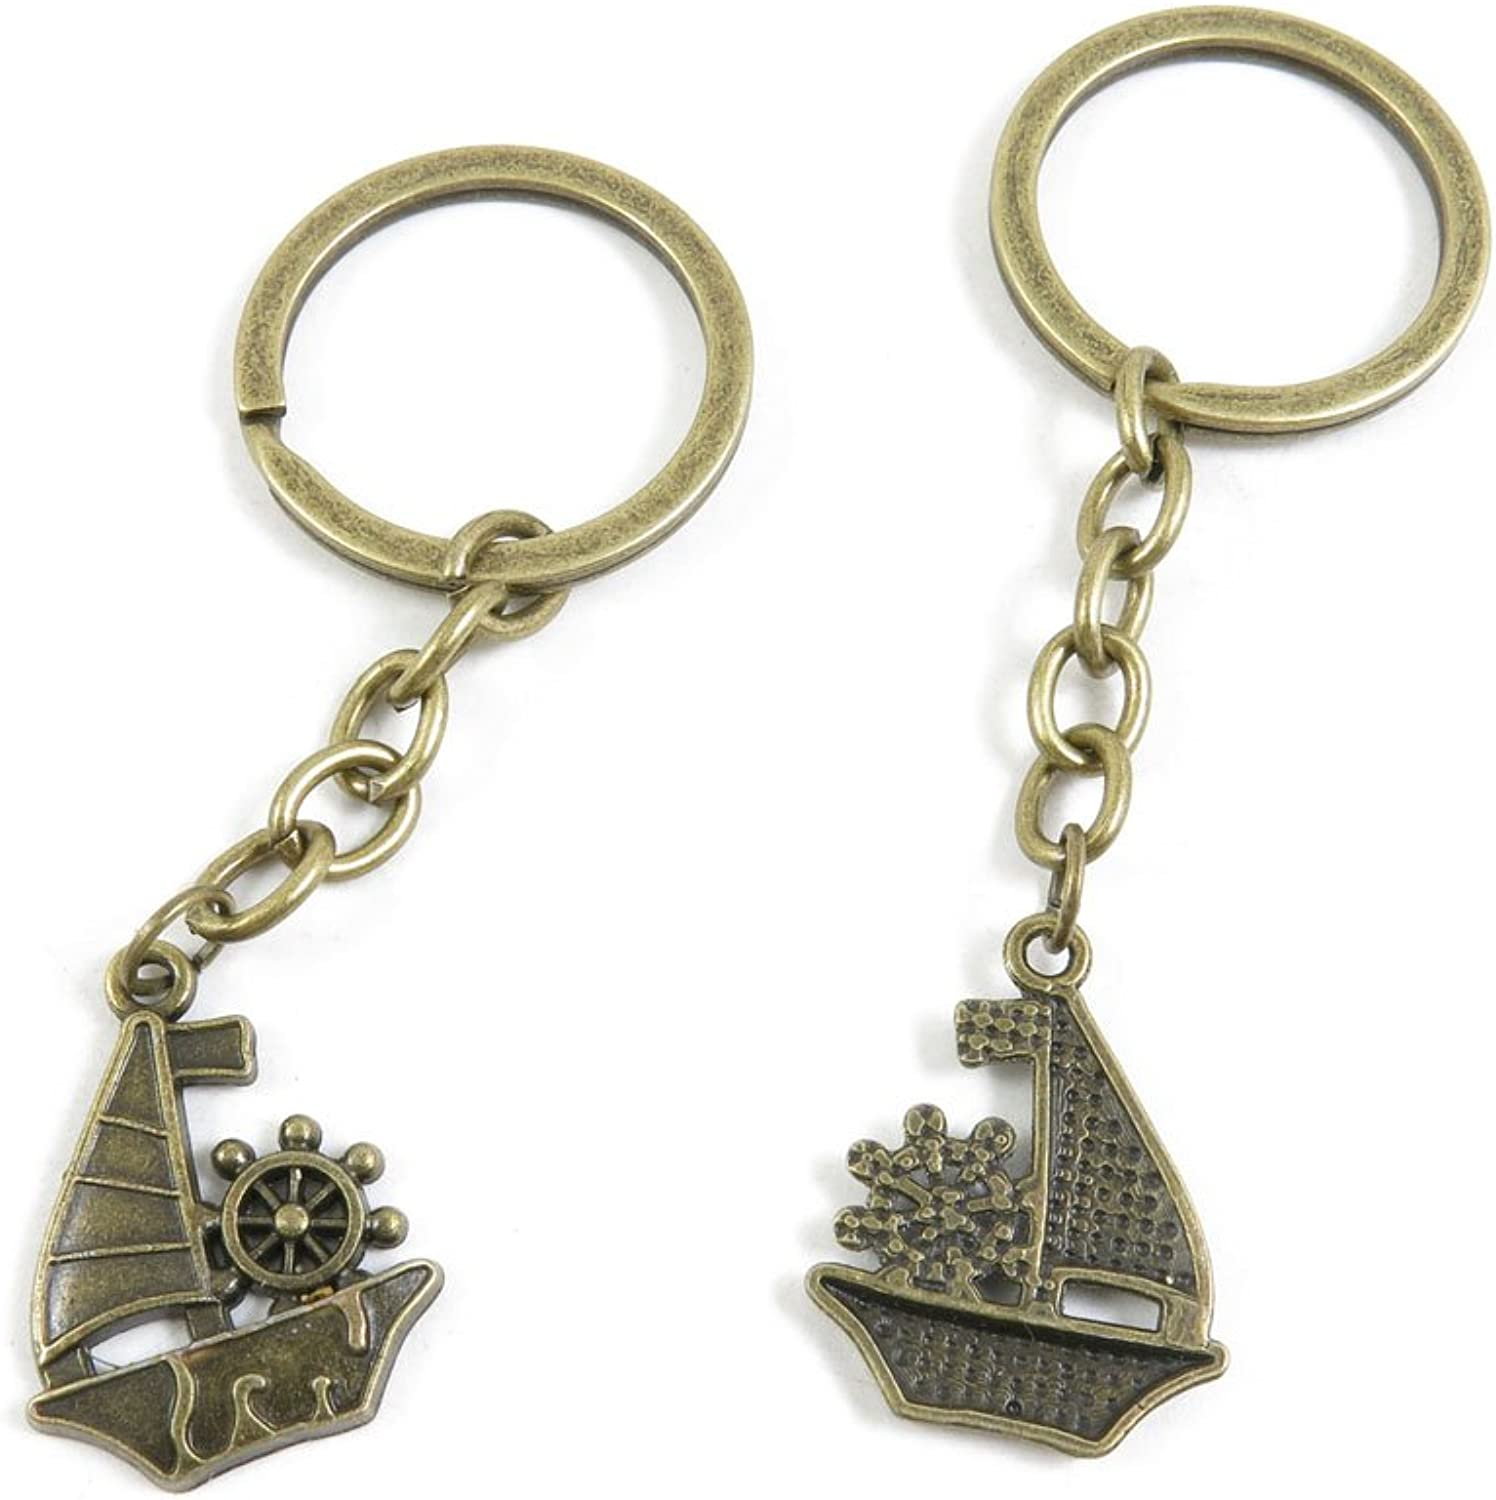 190 Pieces Fashion Jewelry Keyring Keychain Door Car Key Tag Ring Chain Supplier Supply Wholesale Bulk Lots R2OI5 Junk Sailing Ship